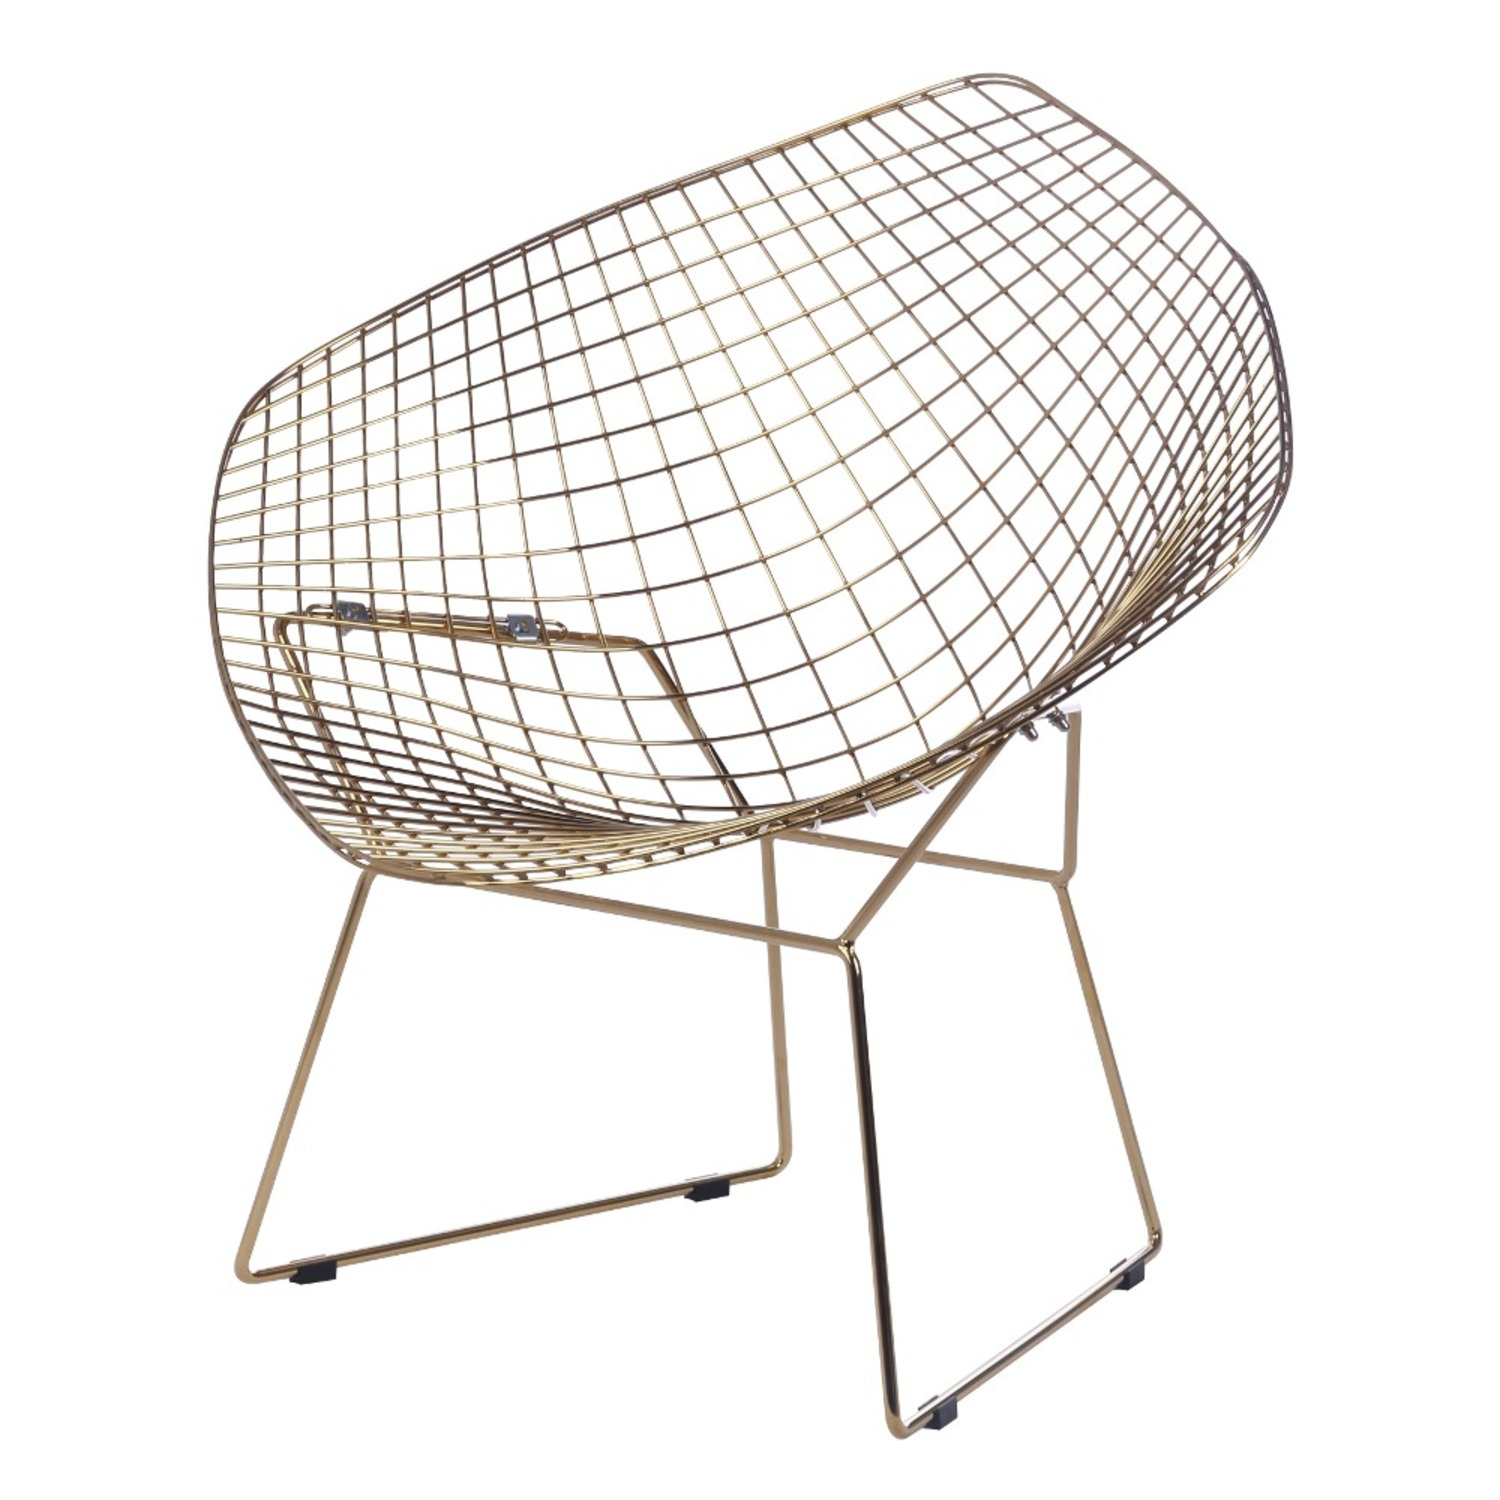 Diamond Chair In Gold Wire W/ Black Leatherette - image-1